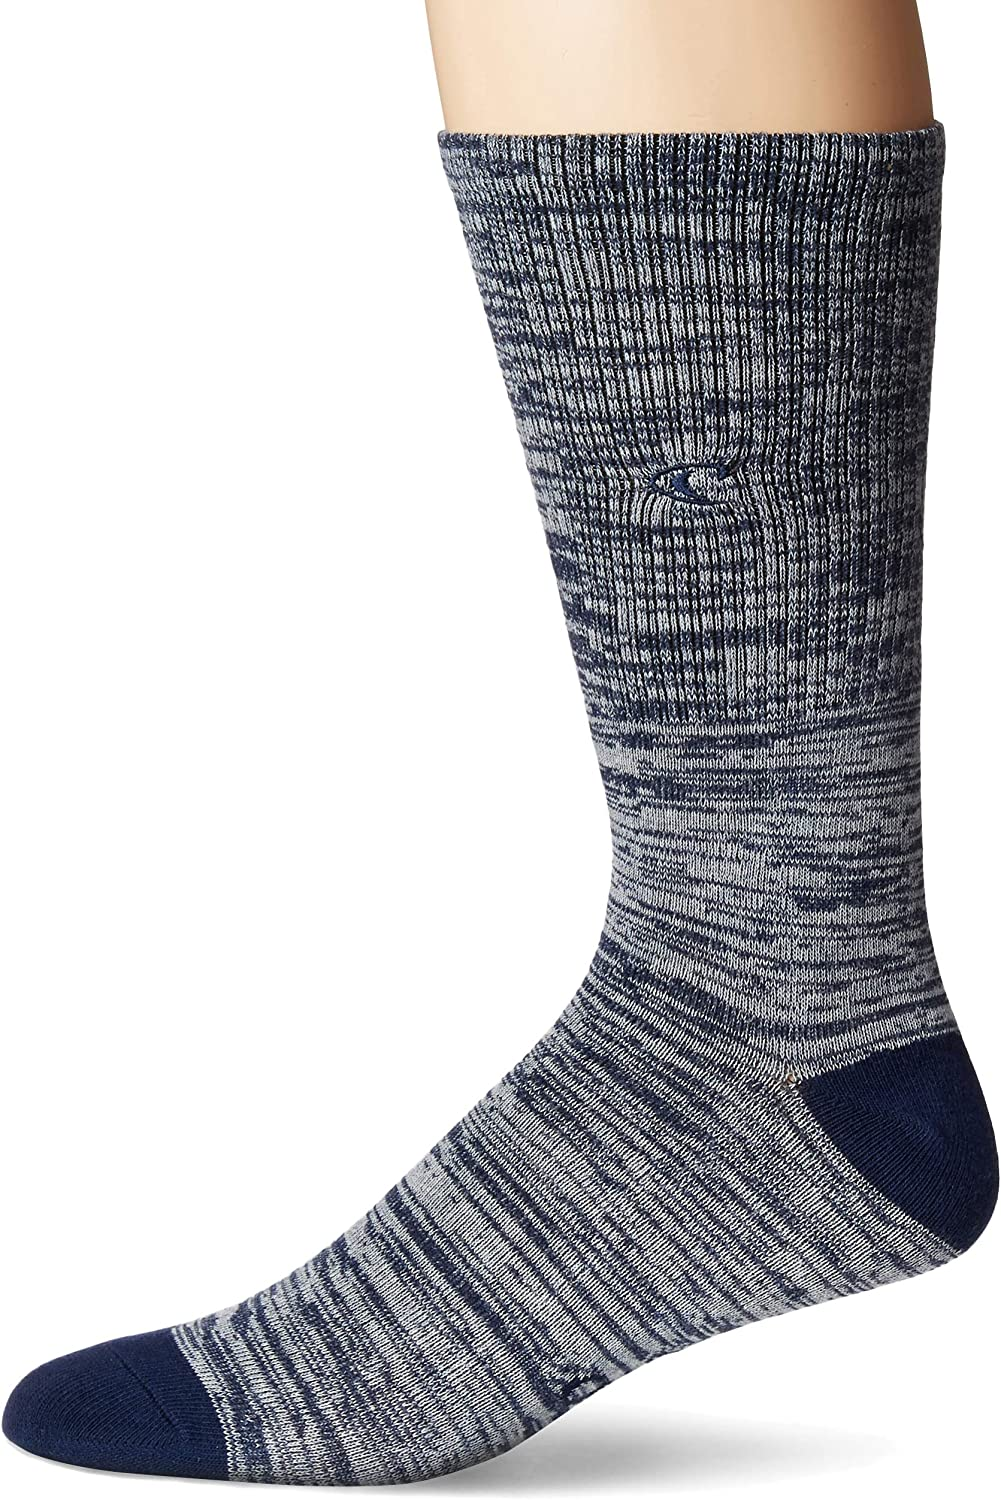 ONeill Mens Commons 3 Pack Crew Sock